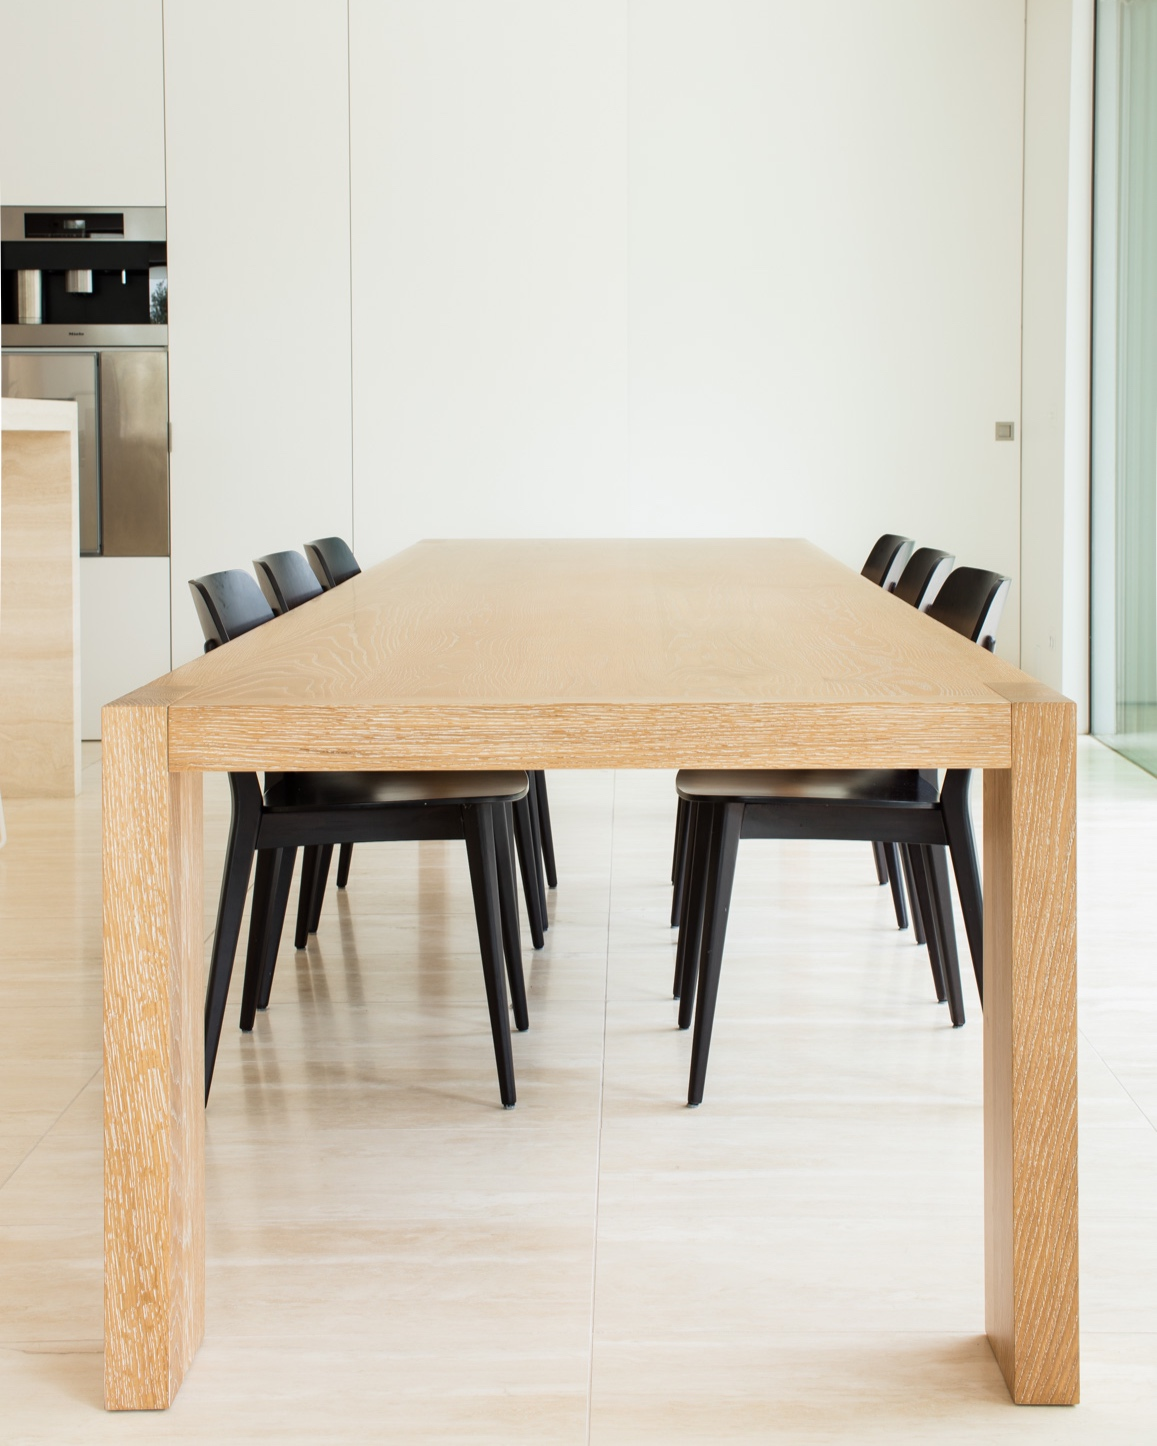 Lowe_furniture_heta_lowe_furniture_oak_table_gestalt_new_york_2.jpg